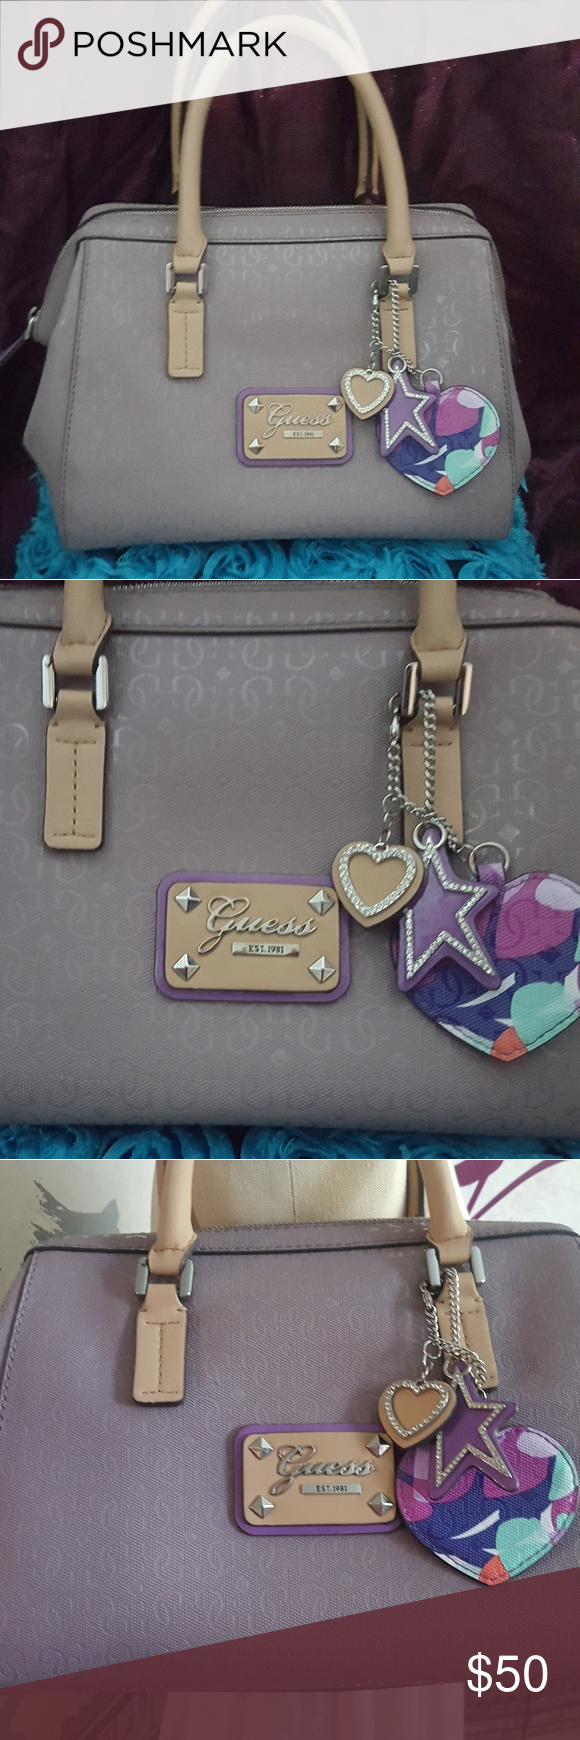 a811dc7e9198 NWOT Guess shoulder bag Beautiful Guess brand bag with hangtags. Lavender  color. Gorgeous